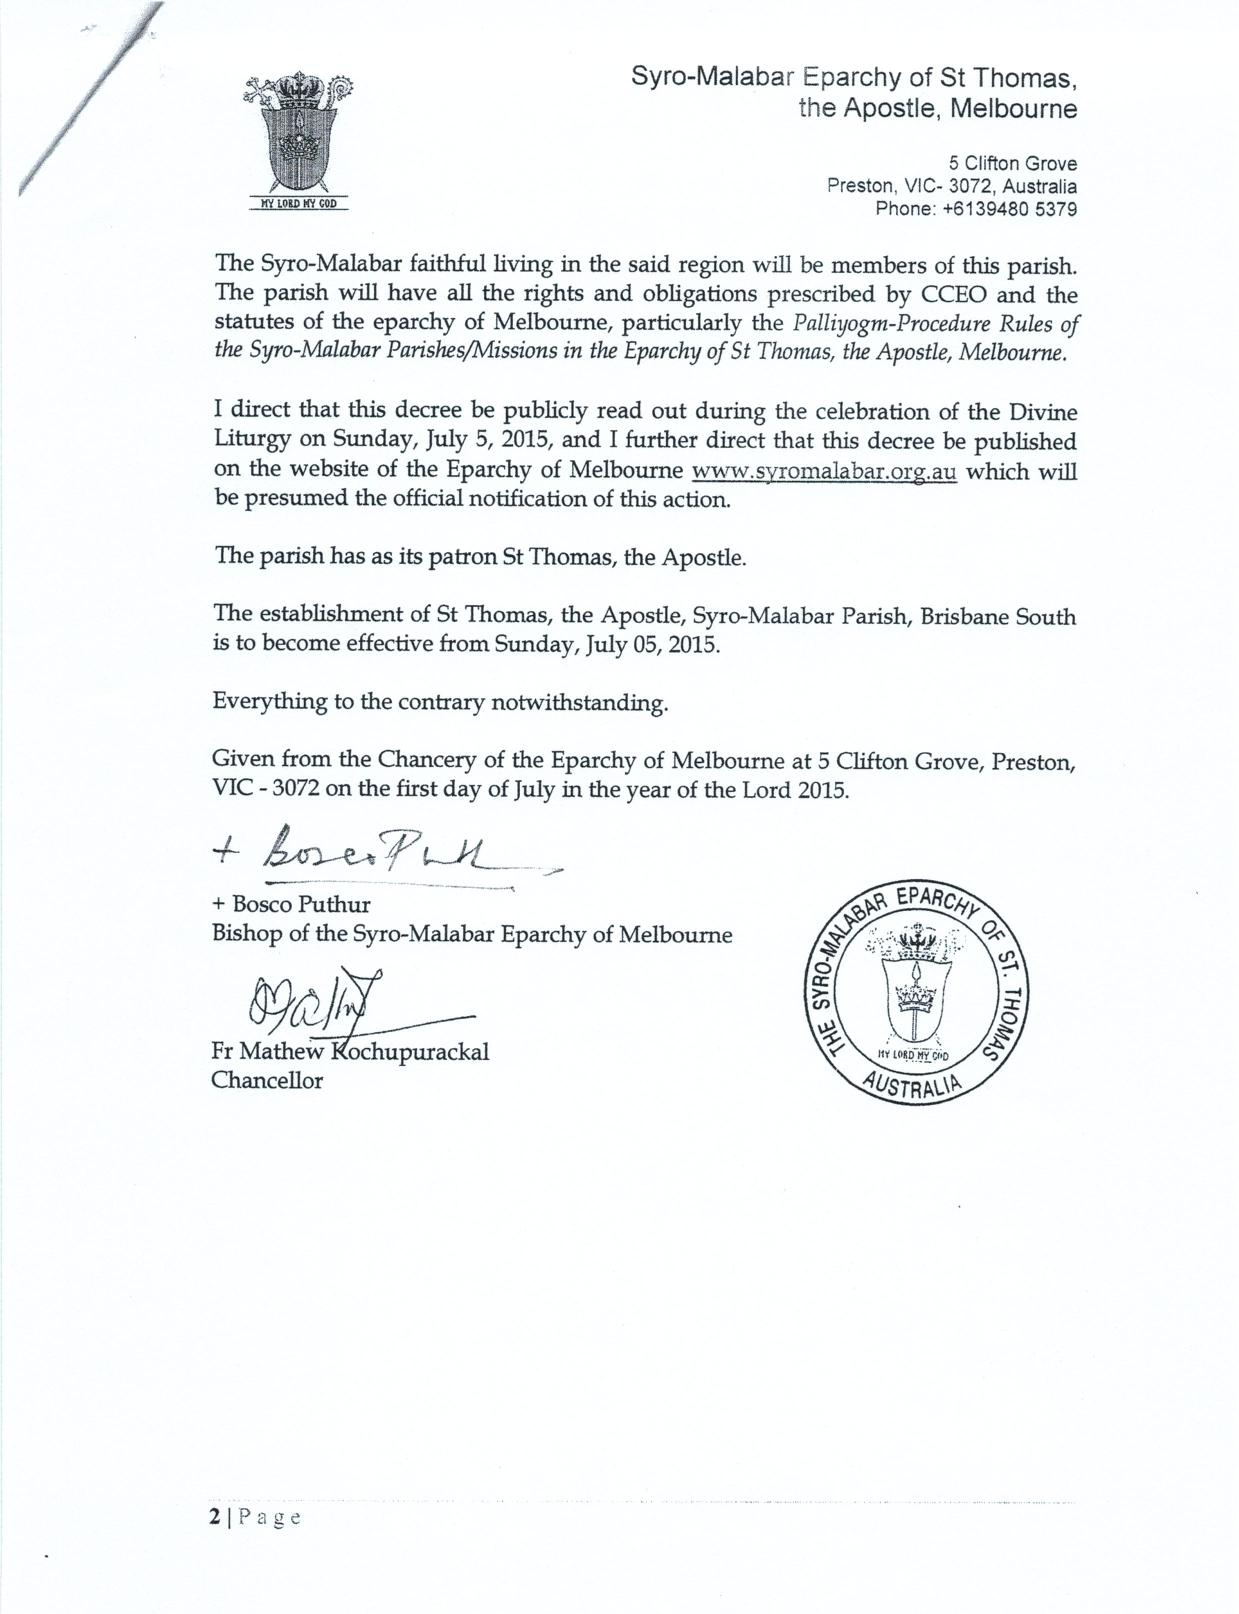 decree-of-establishemnt-brisbane-south-1-page-002